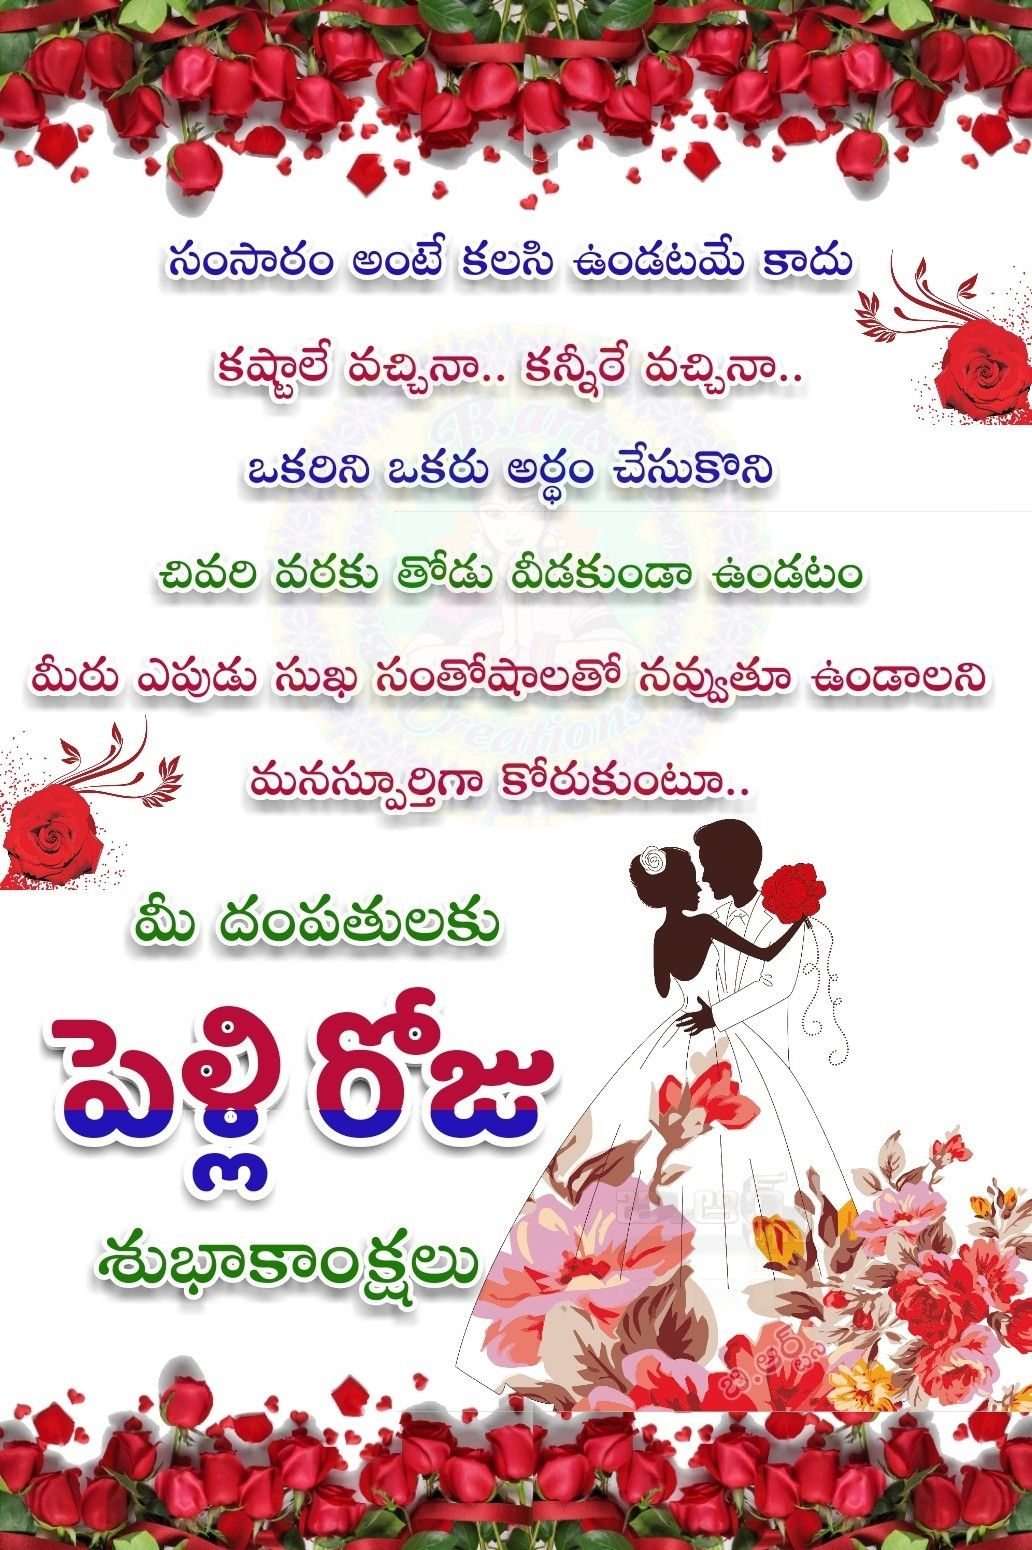 Happy wedding anniversary annayya Wedding anniversary